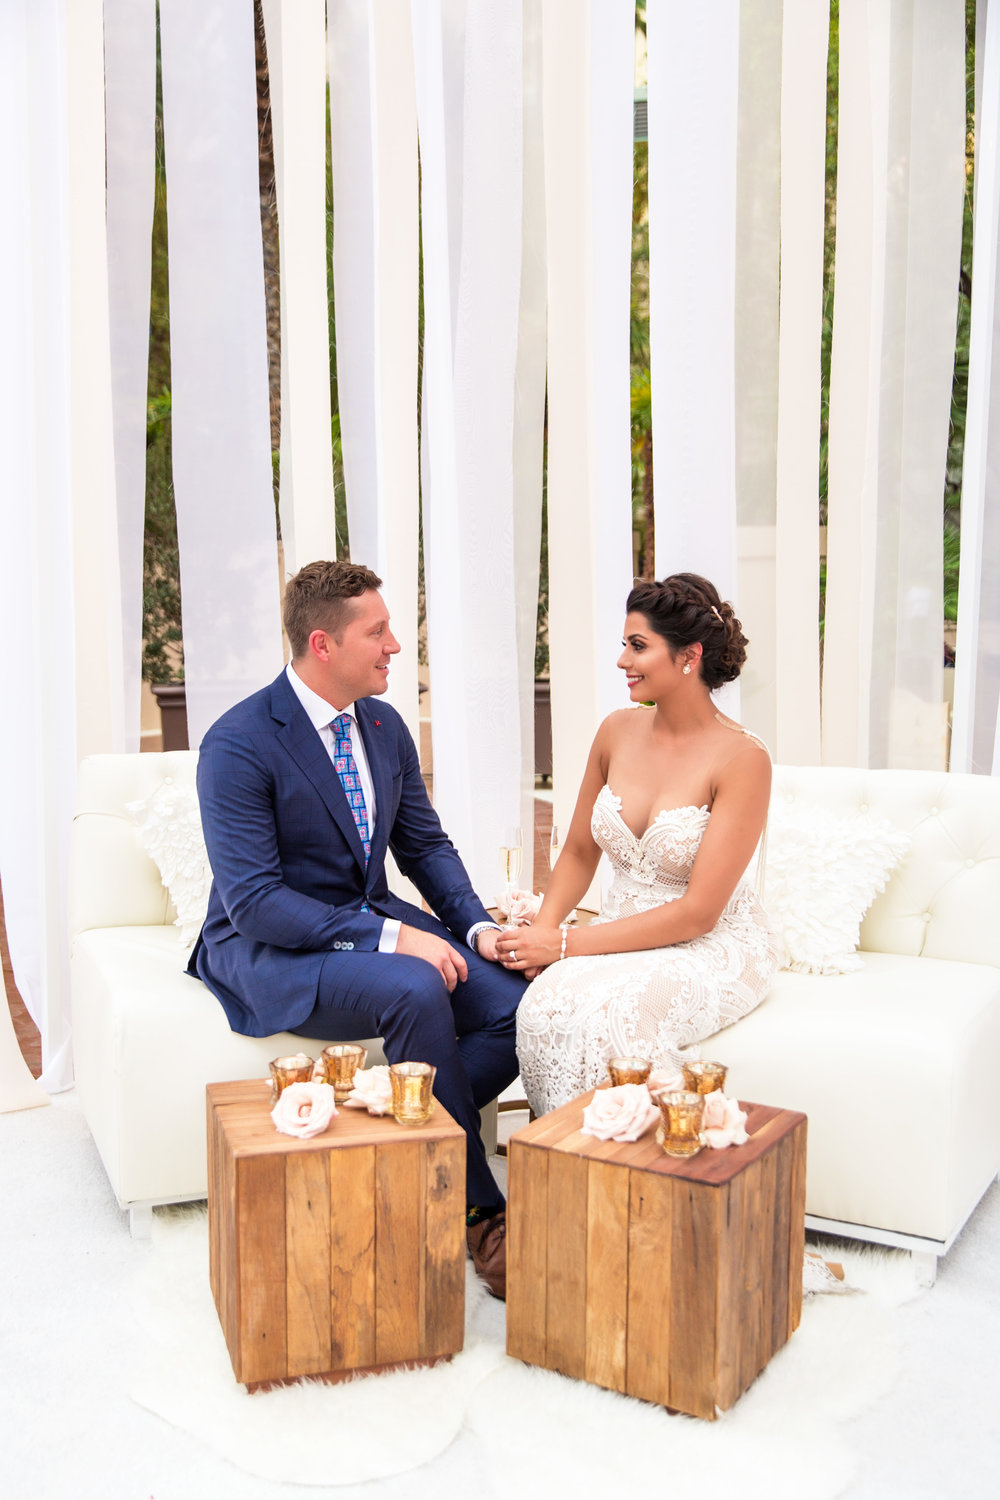 Couple e in their birdcage. Wedding Planning by  Andrea Eppolito Events   ·  Photography by  Shandro Photo    ·  Wedding Venue  Four Seasons Las Vegas   ·  Floral and Decor by  Destination by Design   ·  Cake by  Four Seasons Las Vegas   ·  Chandeliers and Lighting by  LED Unplugged   ·  Dress by  Berta